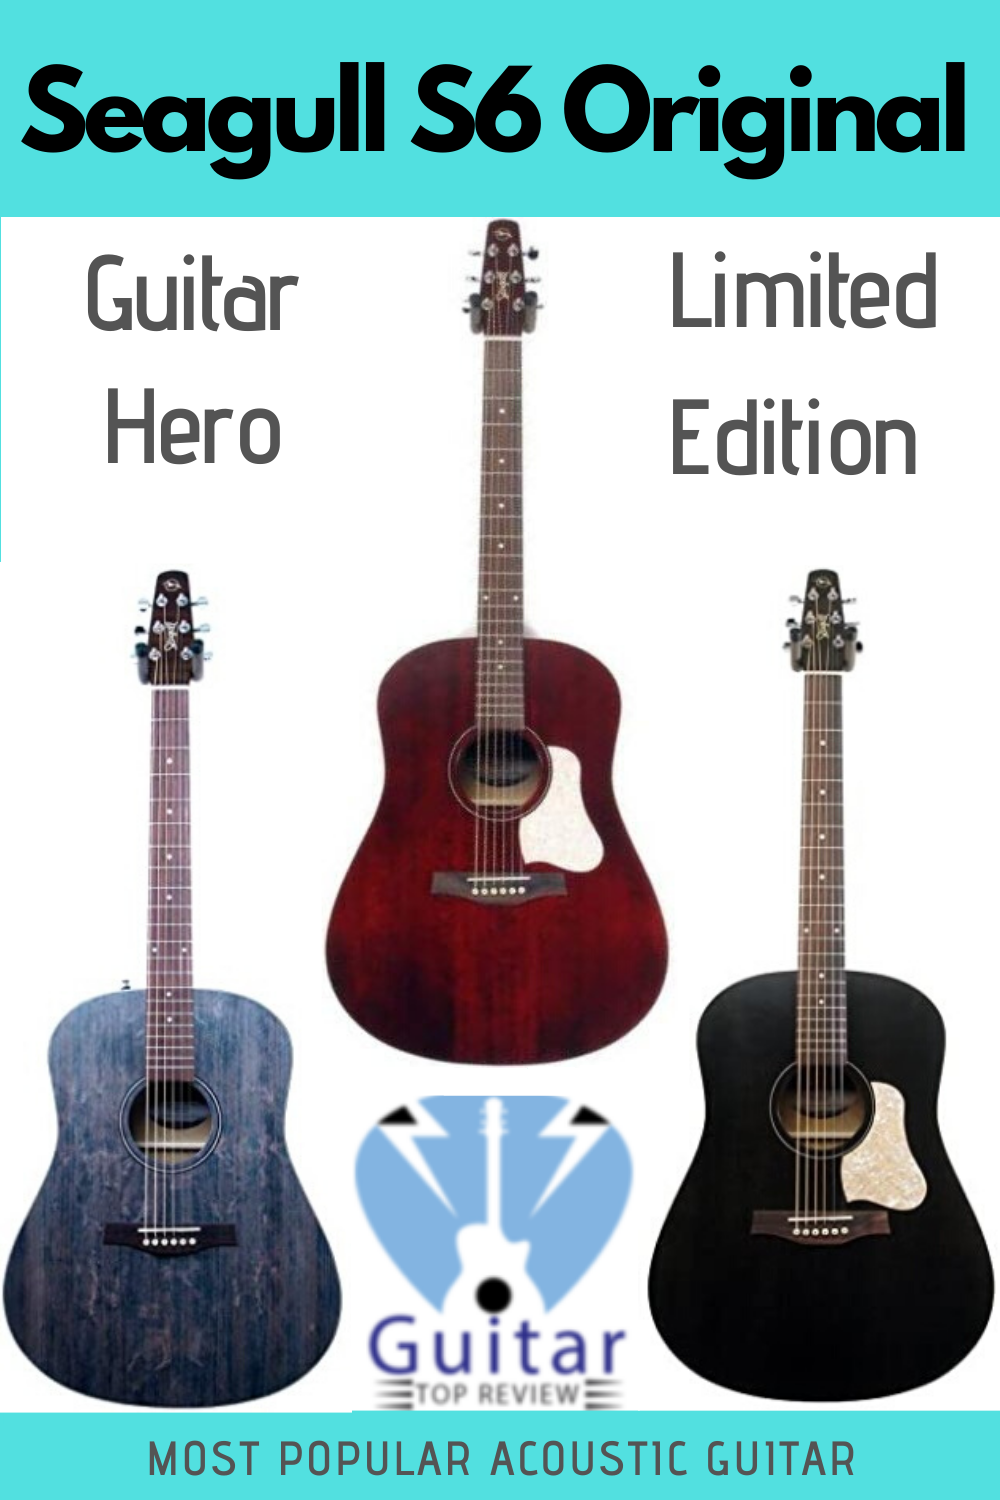 Complete Seagull S6 Review In 2020 Best Acoustic Guitar Guitar Guitar For Beginners